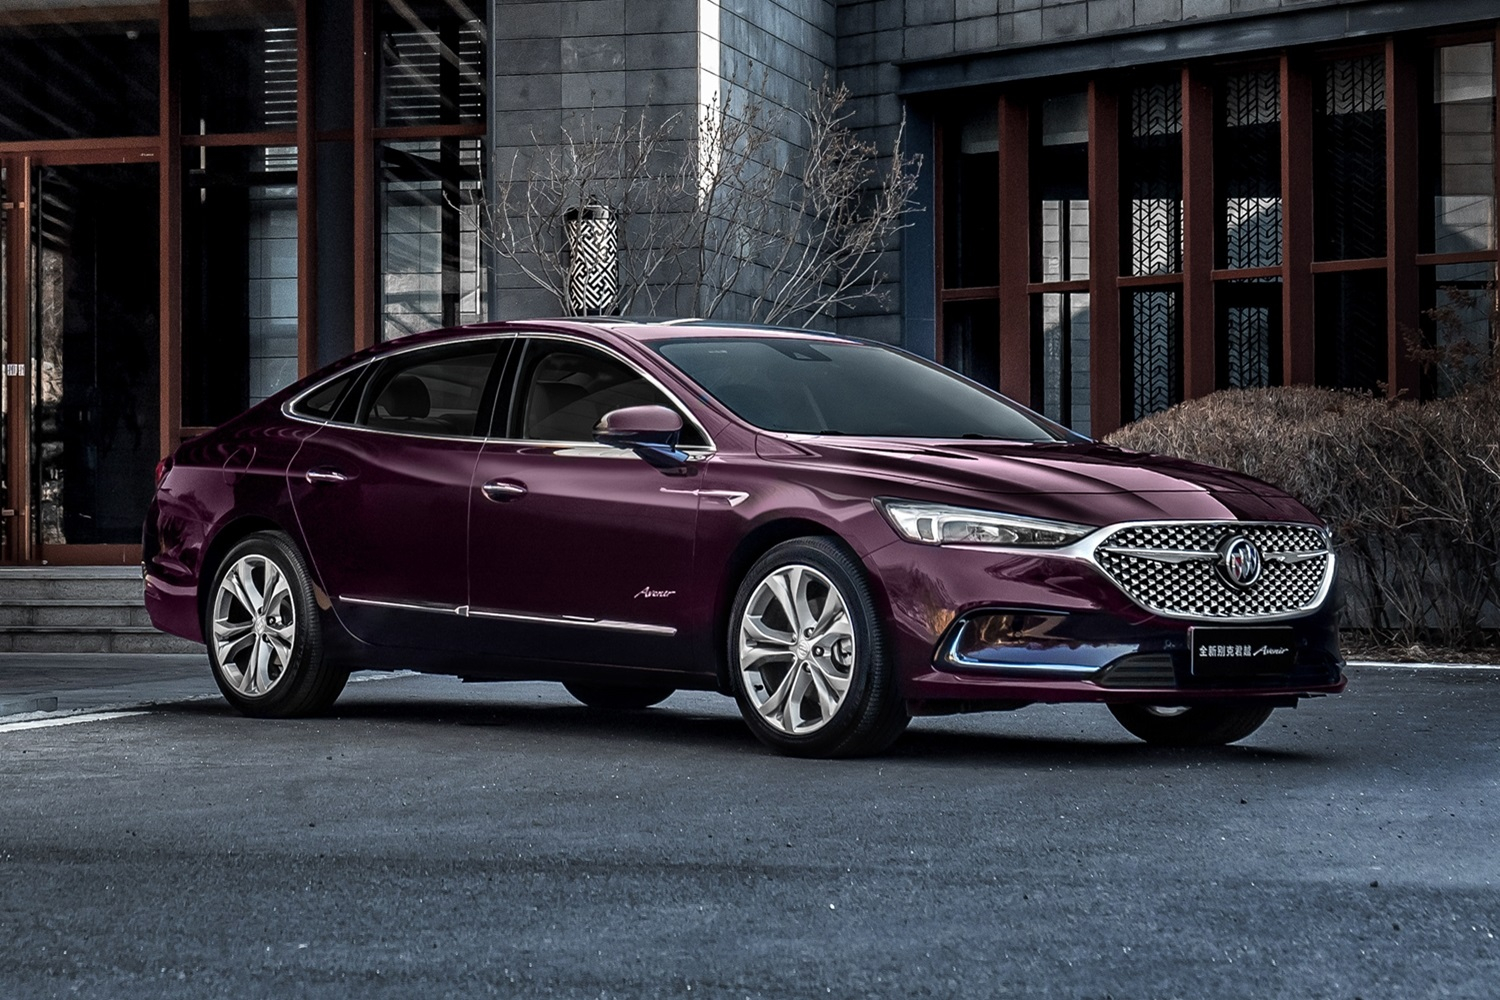 2021 Buick Lacrosse Gets More Refined Than Ever | Gm Authority New 2022 Buick Lacrosse Pictures, Cost, Trims